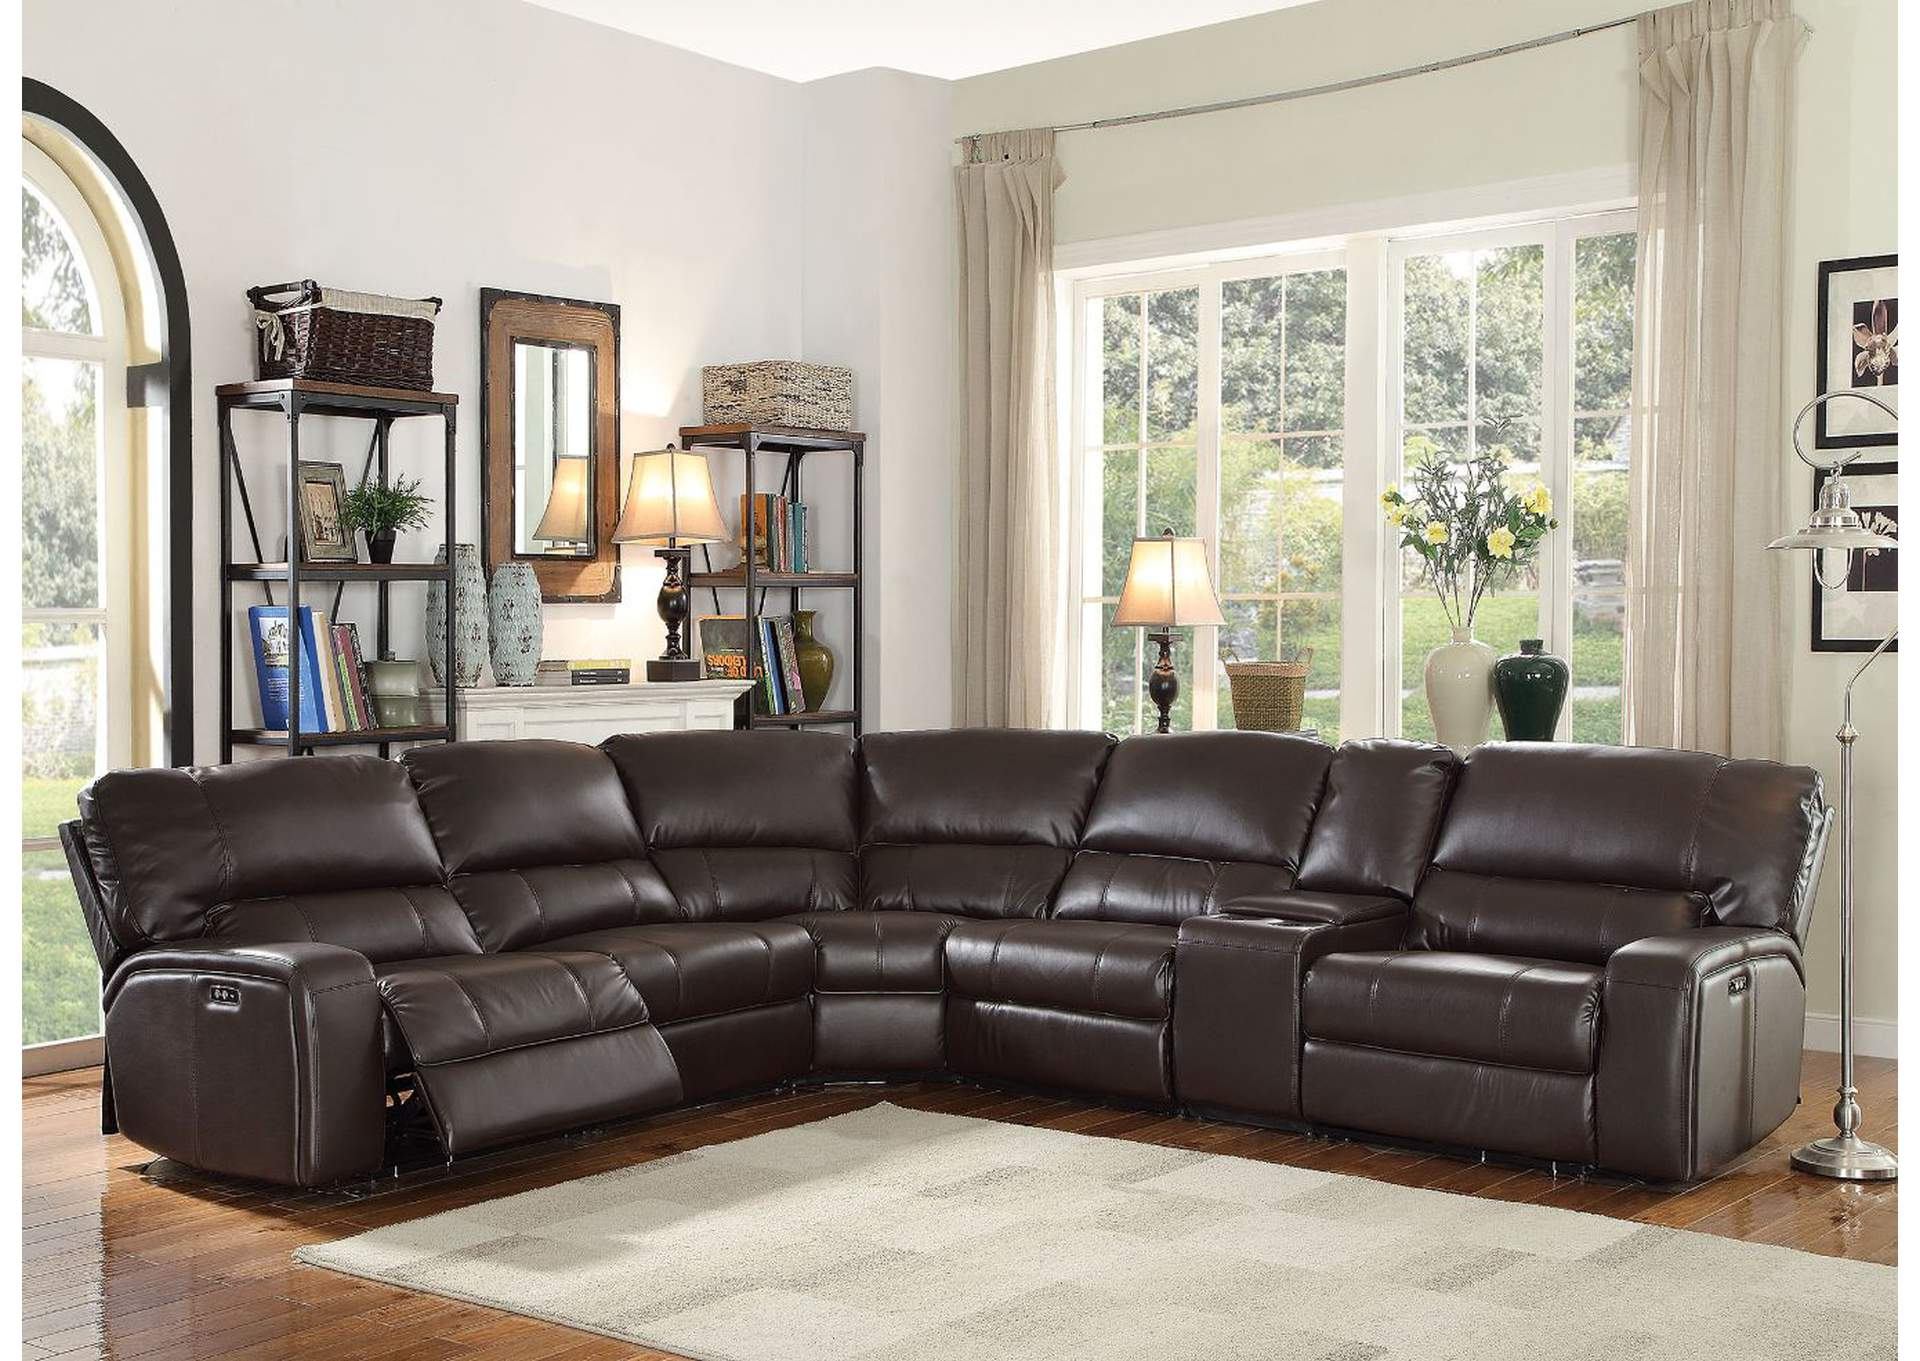 Saul Espresso Leather-Aire Sectional Sofa,Acme